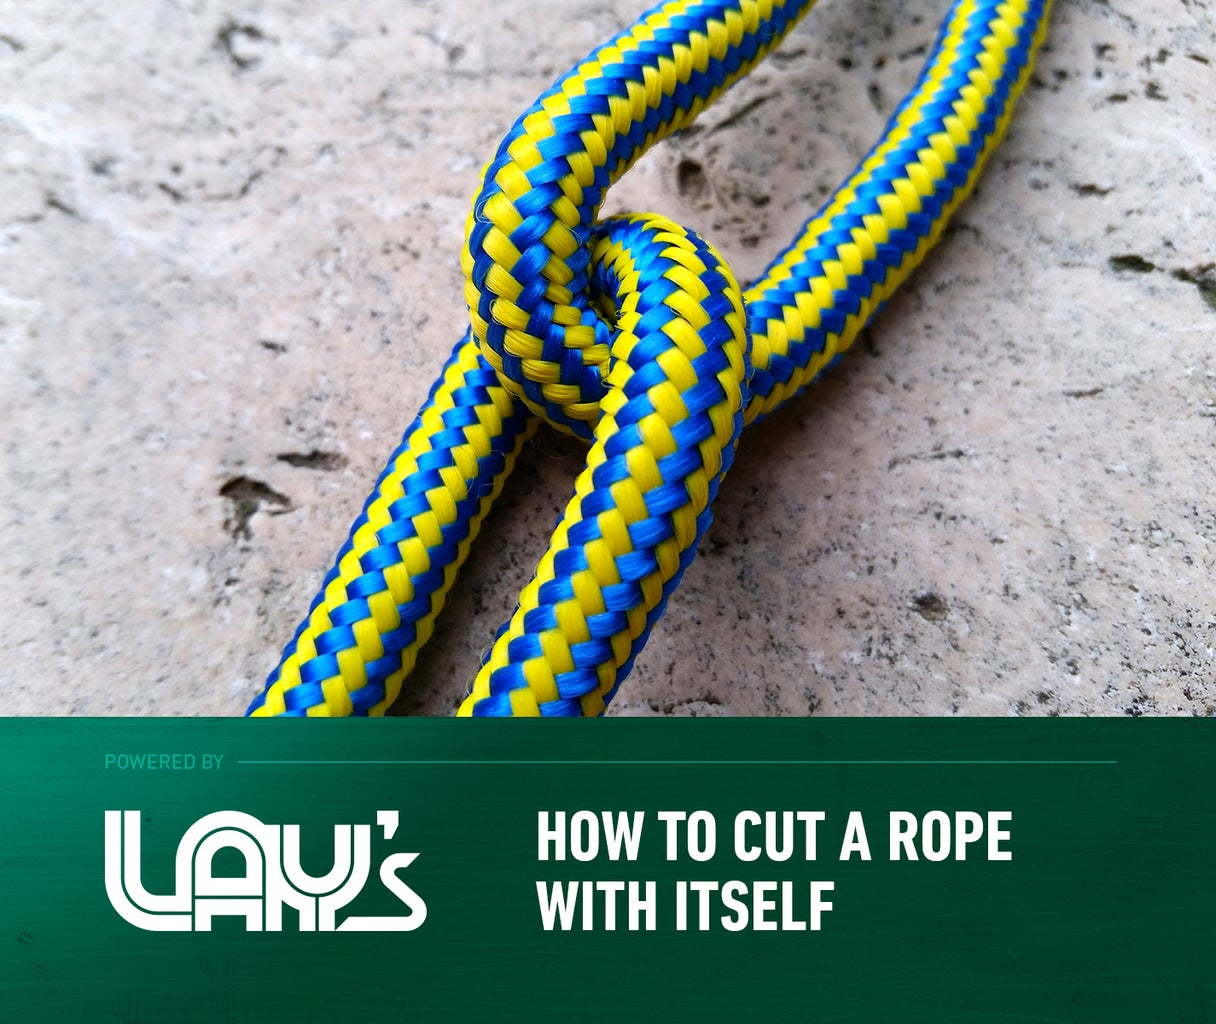 How to Cut a Rope With Itself